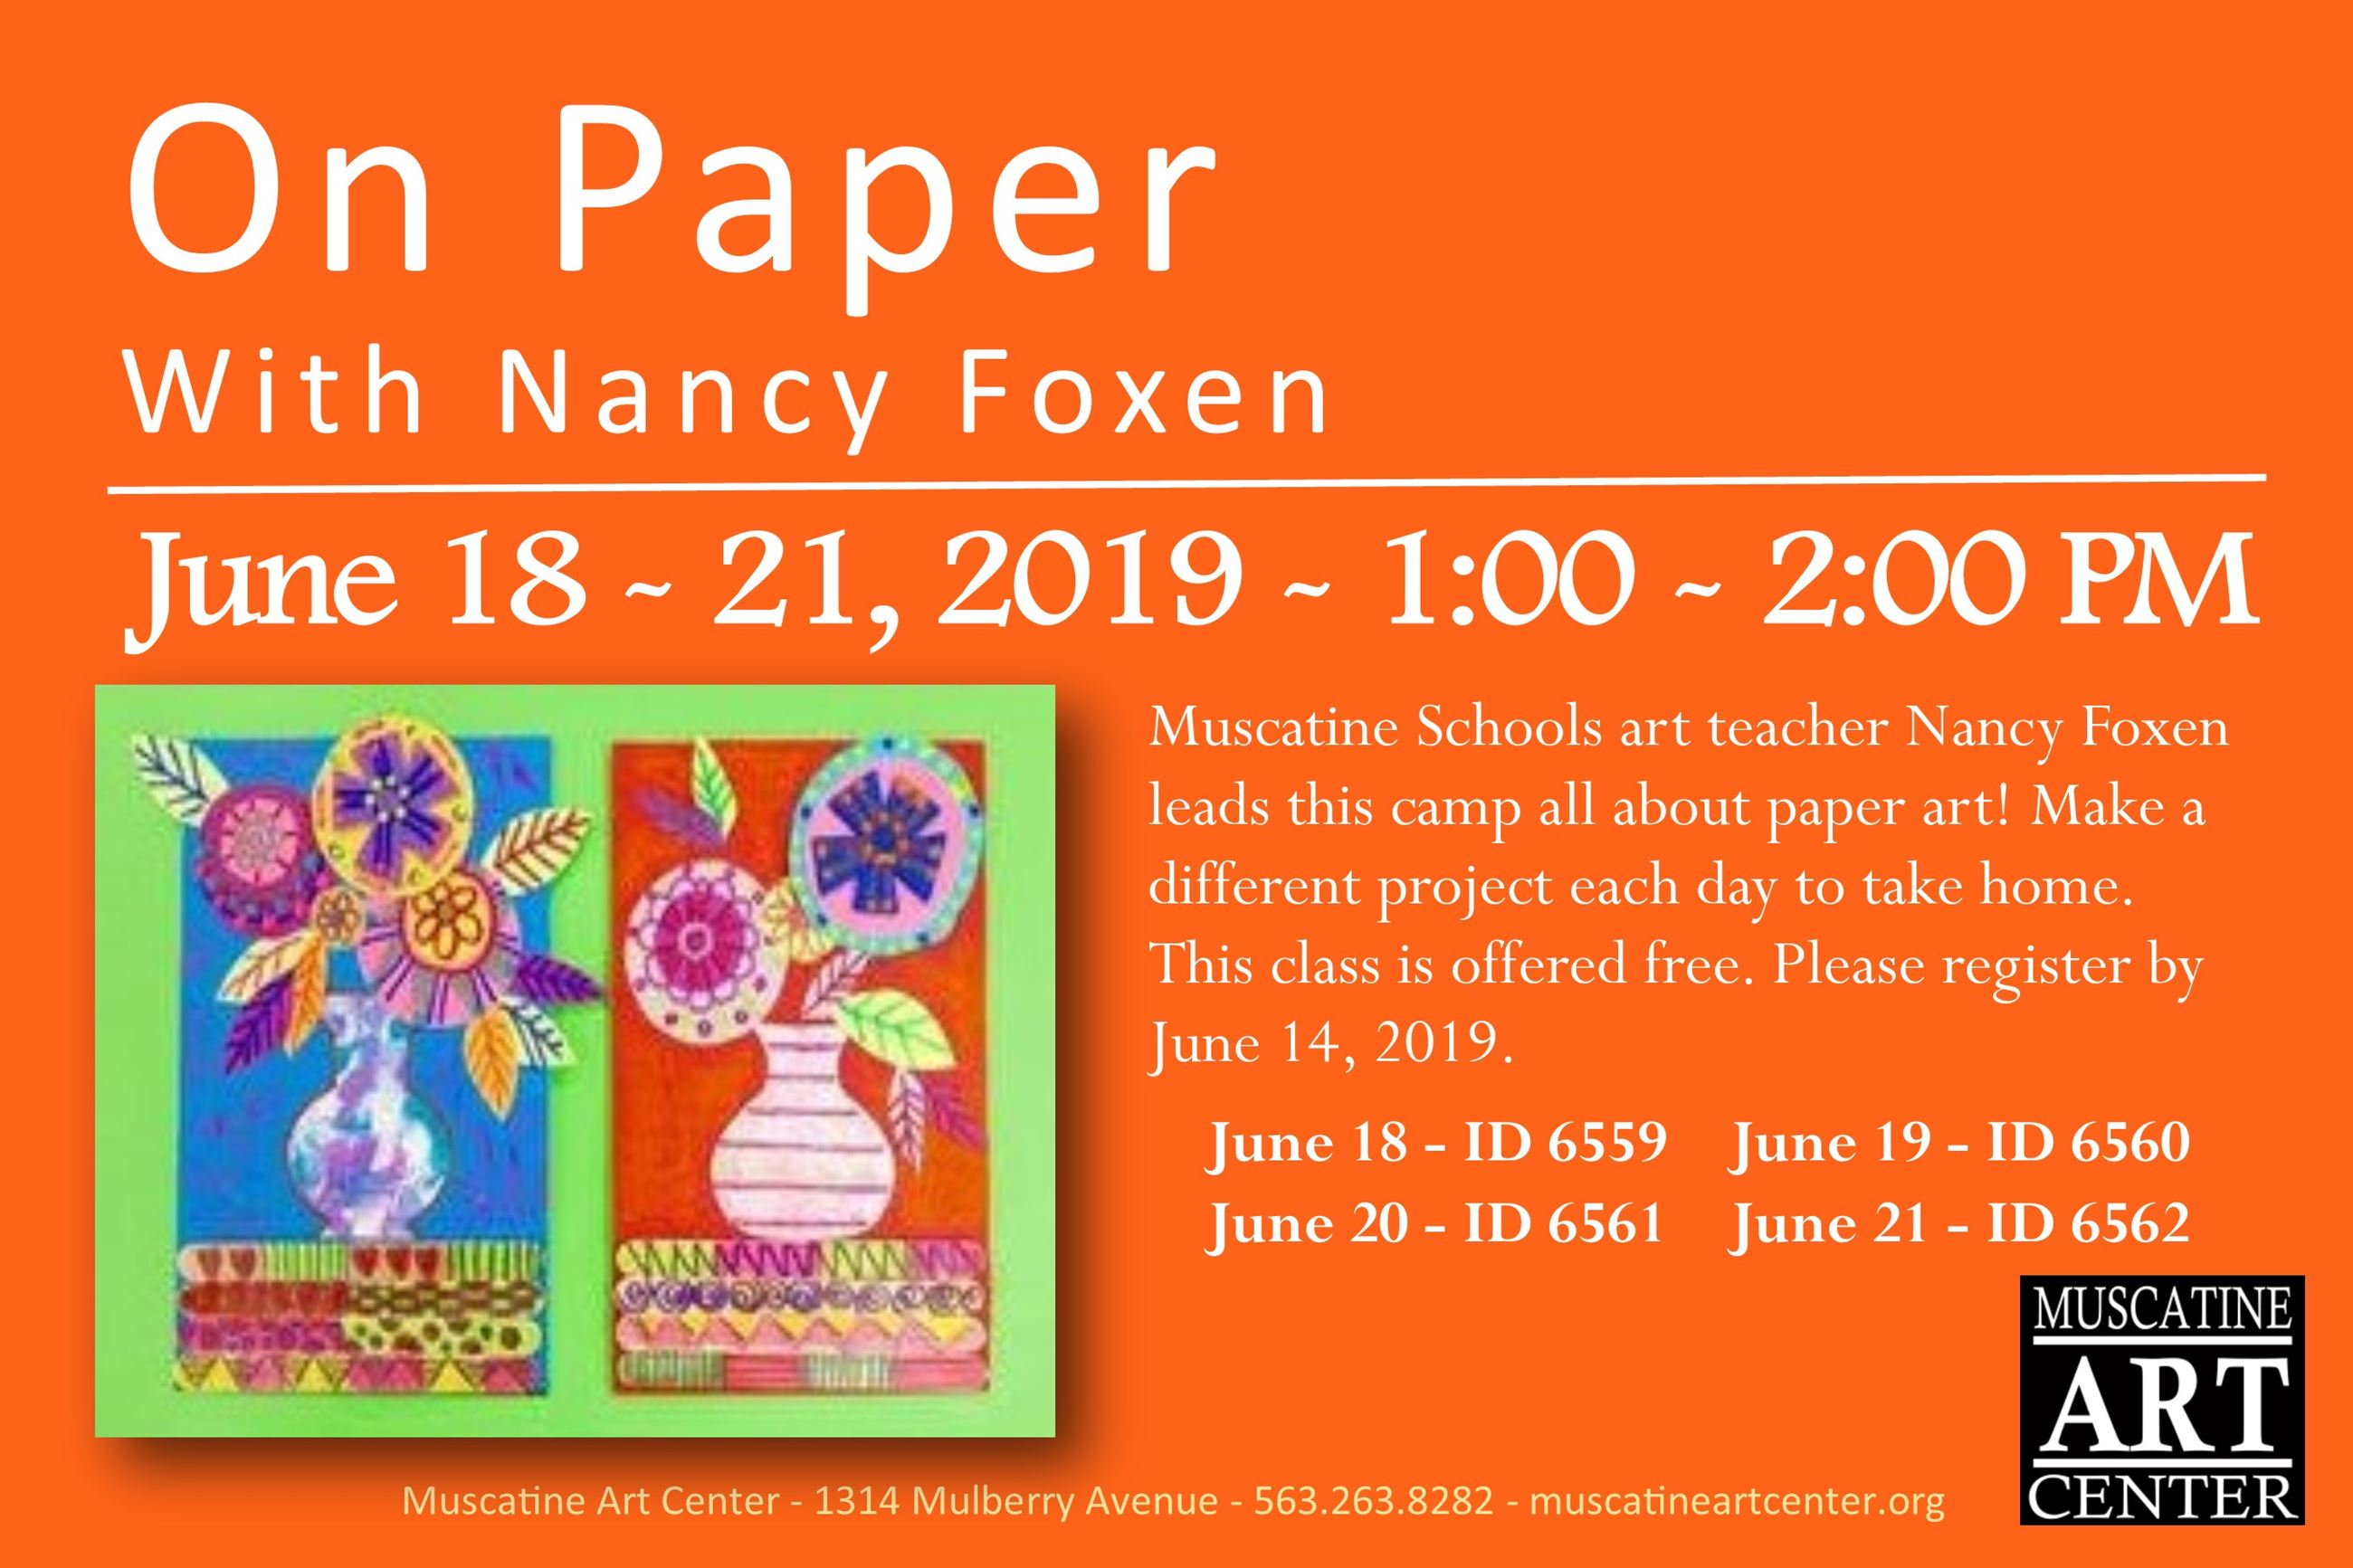 June 18-21 - On Paper Summer Camp with Nancy Foxen